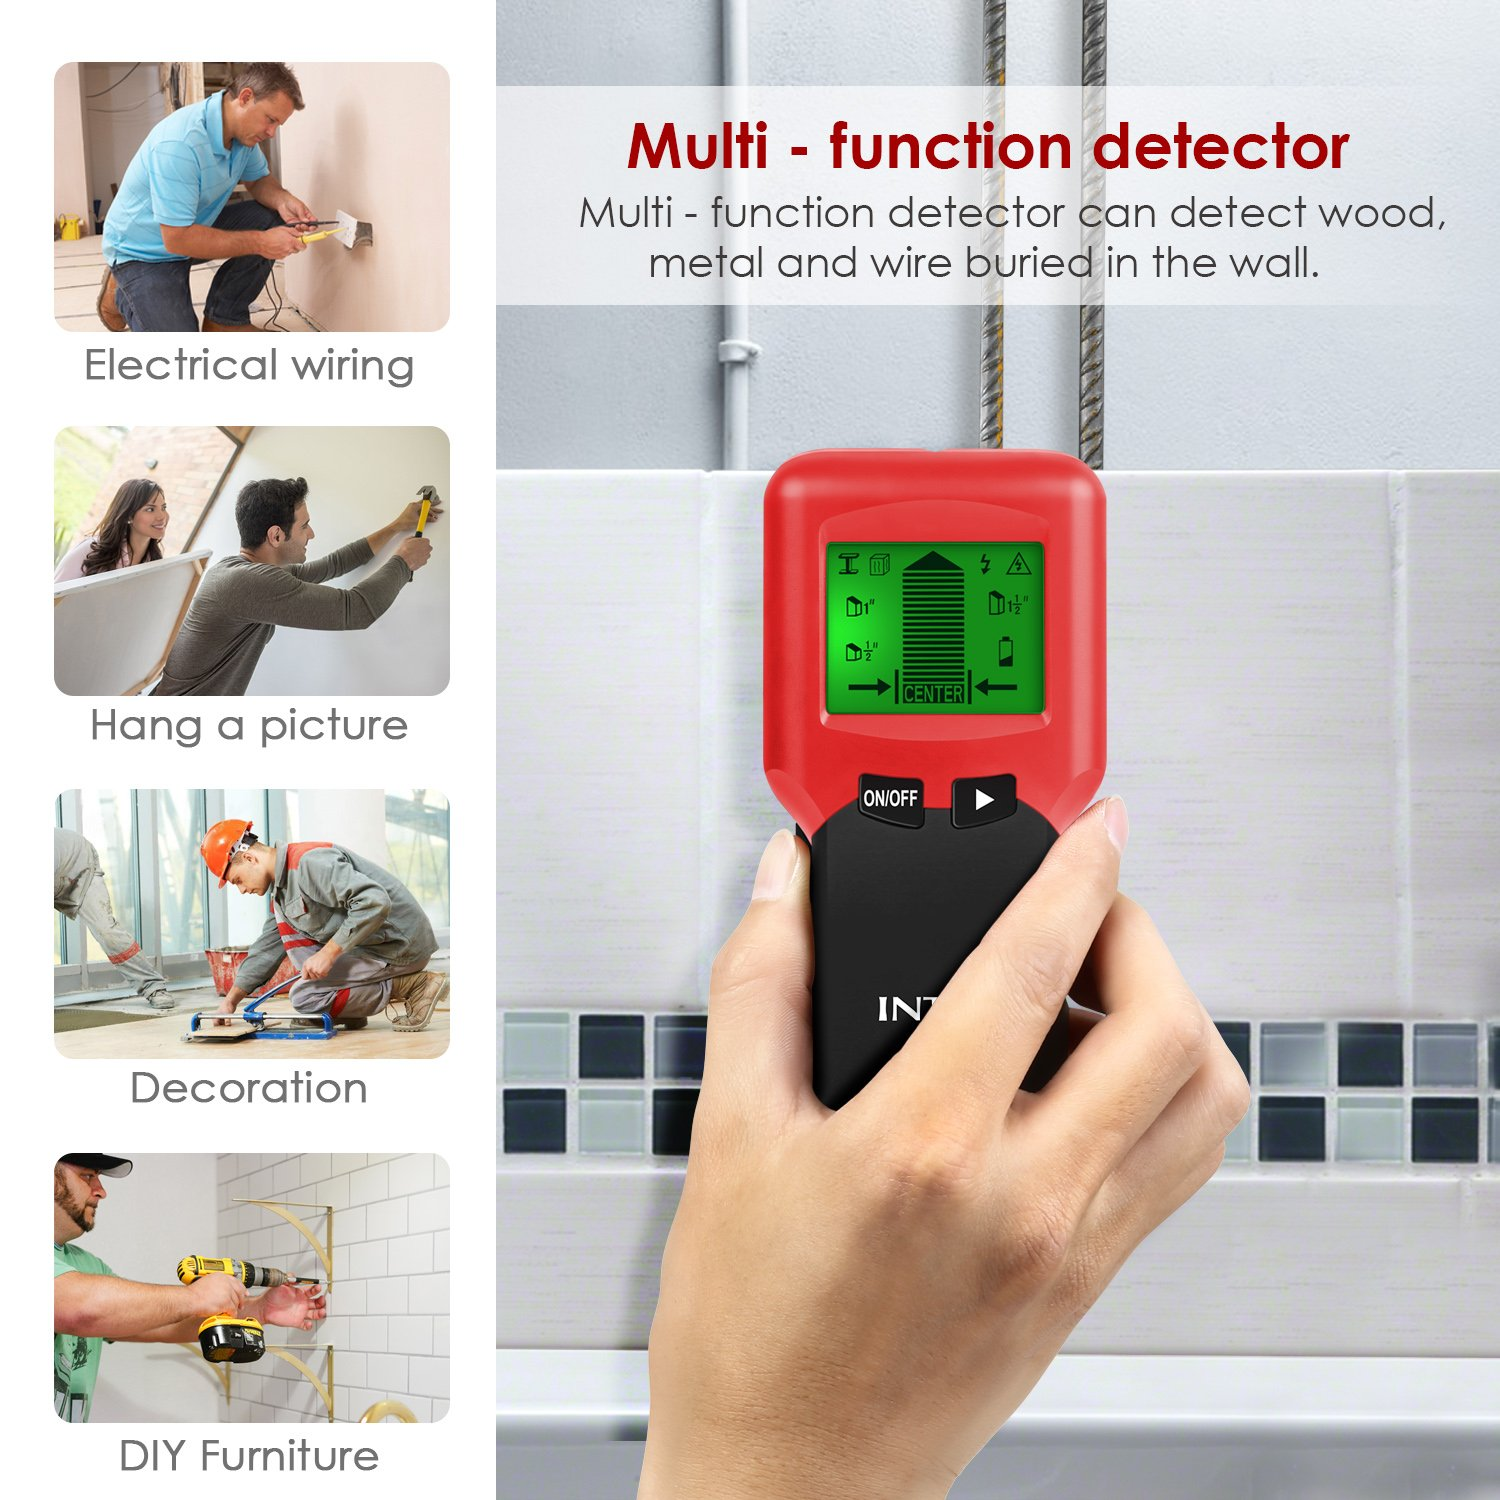 Intey Stud Detector 3 In 1 Finder For Walls Ac Wire Locating Electrical Wiring Behind Wood Wall Scanner Electric Cable With Center Finding Metal